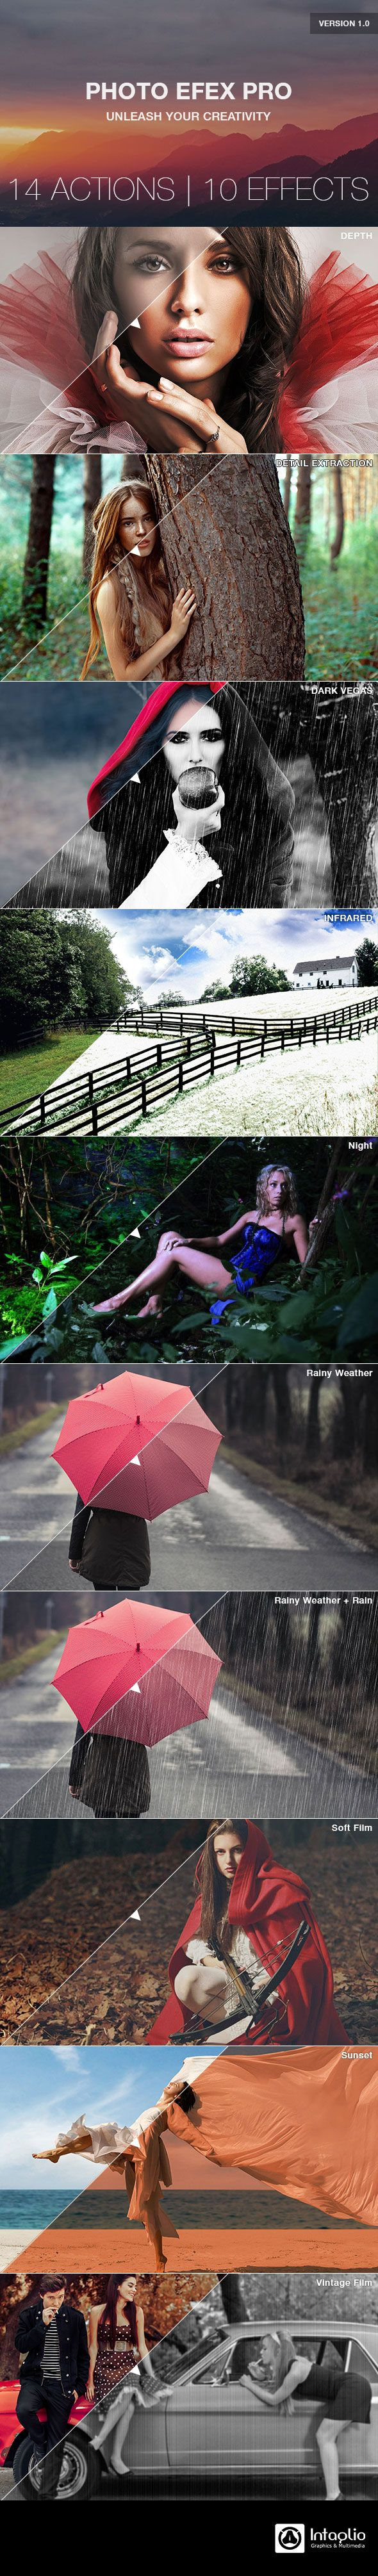 Photo Efex Pro Photoshop Actions #photoeffect